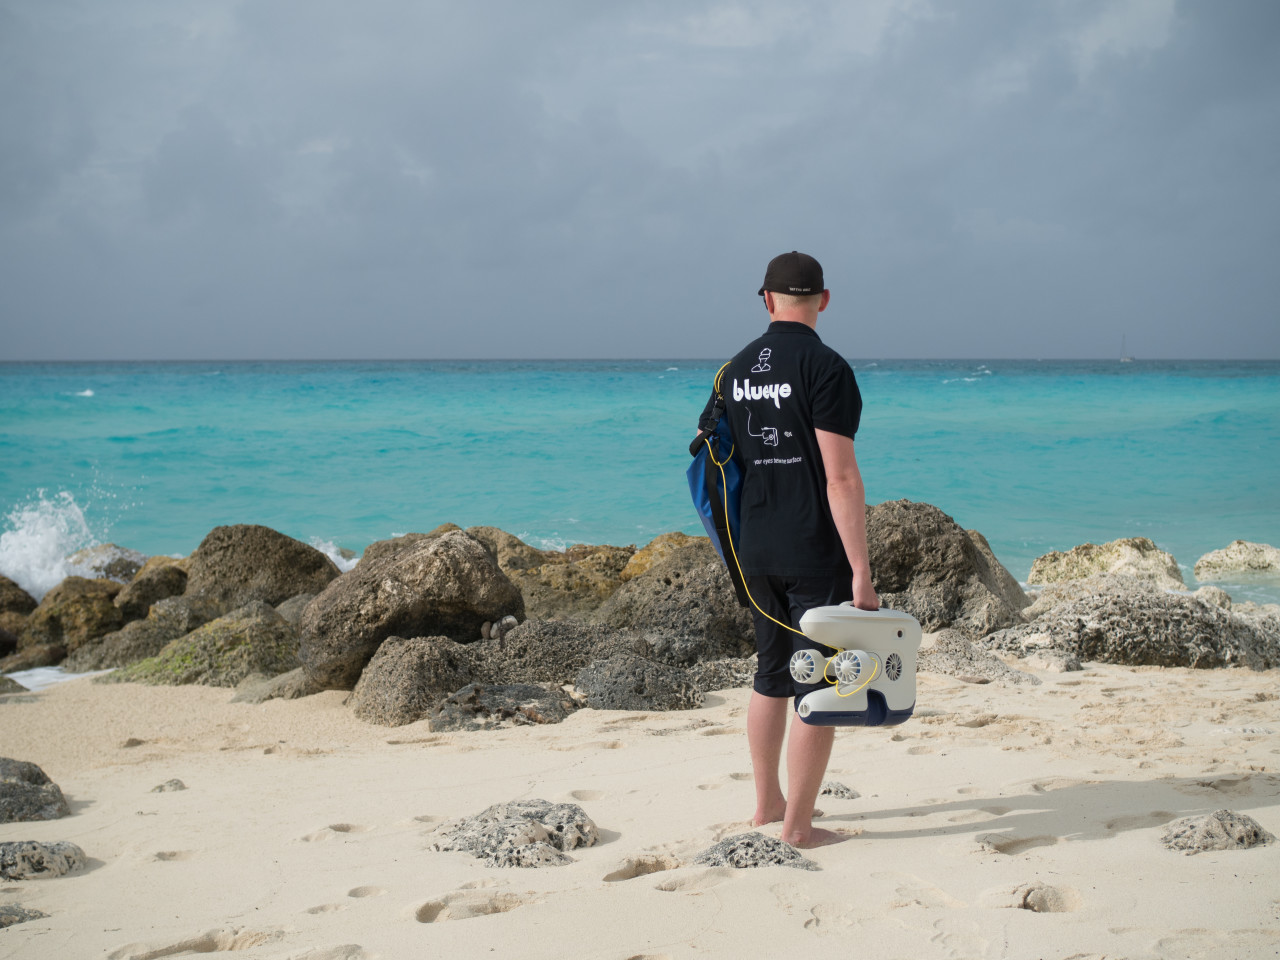 Chief Software Developer Jonas Follesø with the drone on one of the Bimini beaches